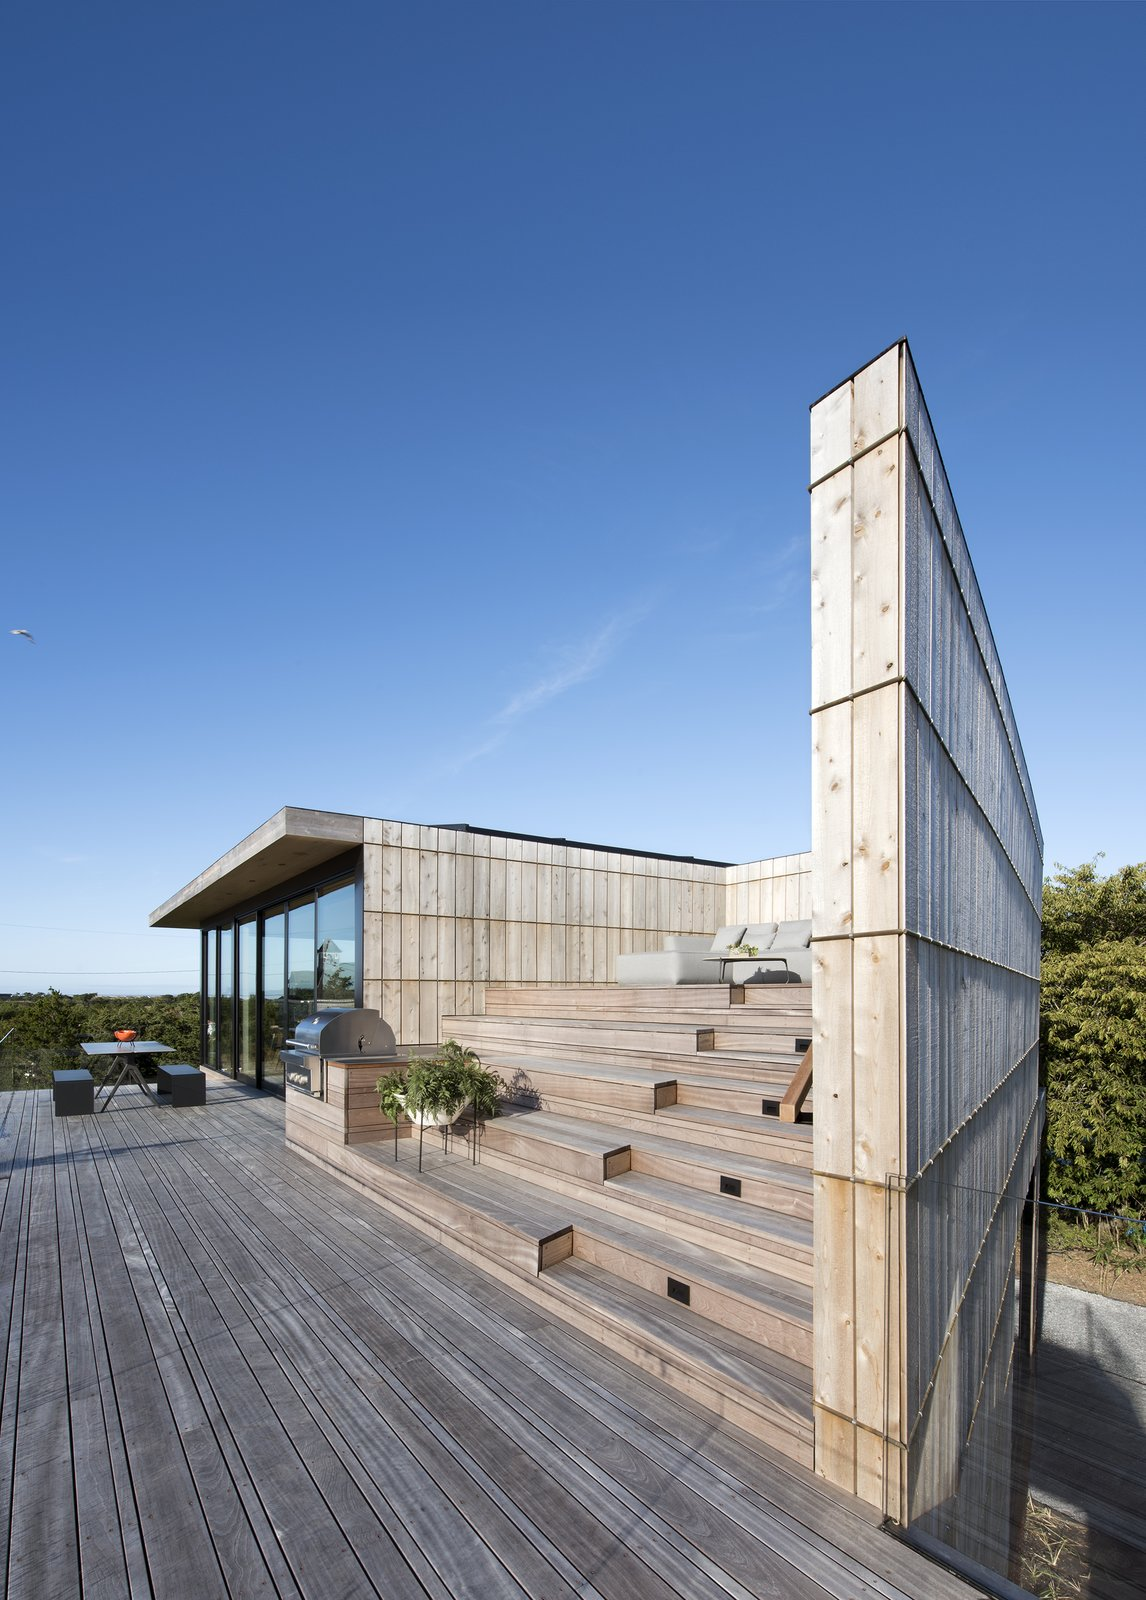 Tagged: Horizontal, Raised Planters, Decking, Back Yard, Landscape, Exterior, House, and Wood.  Best Exterior Decking Photos from Amagansett Landmark